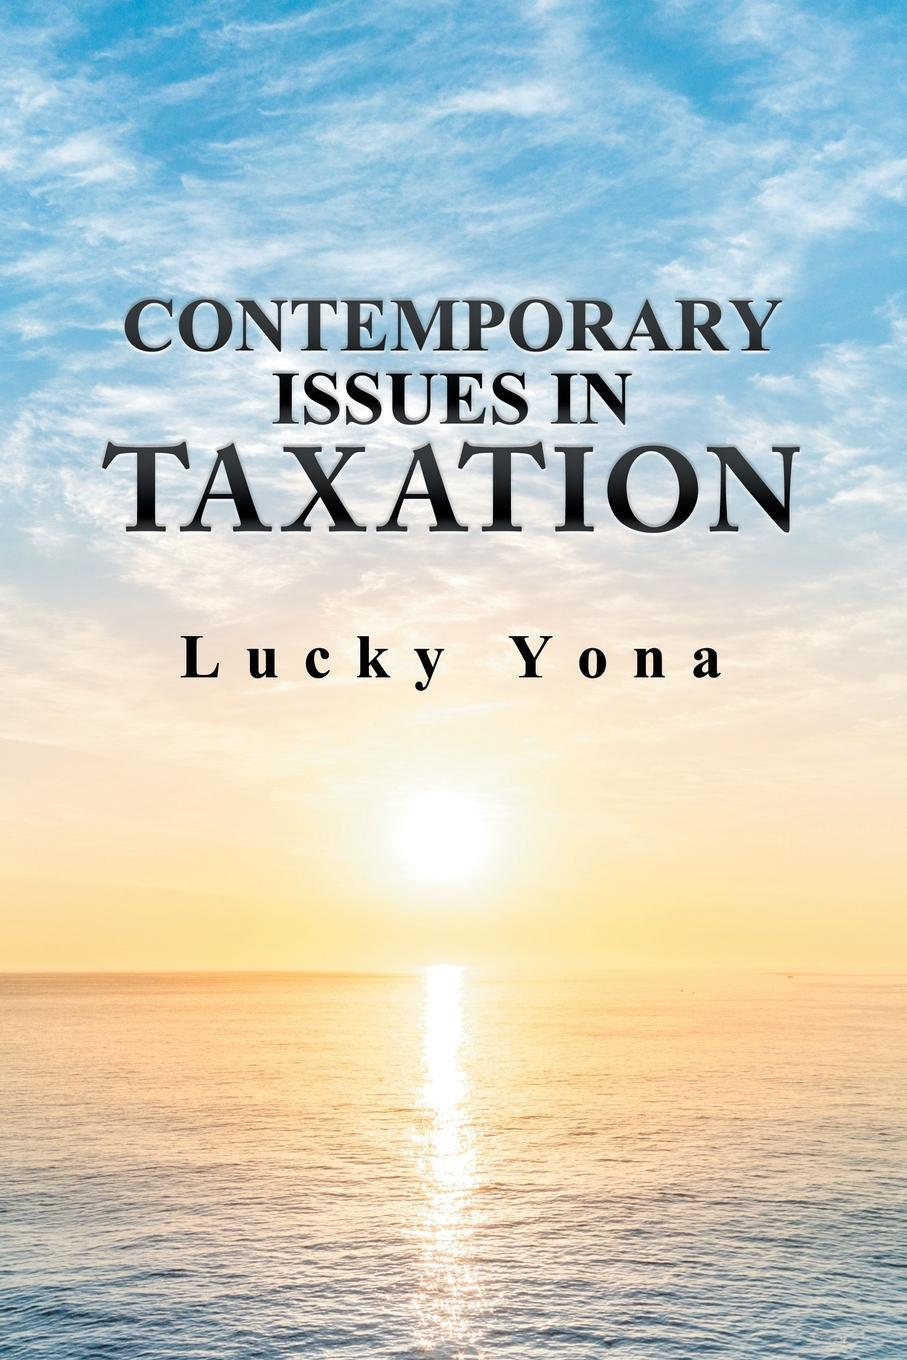 Contemporary Issues in Taxation